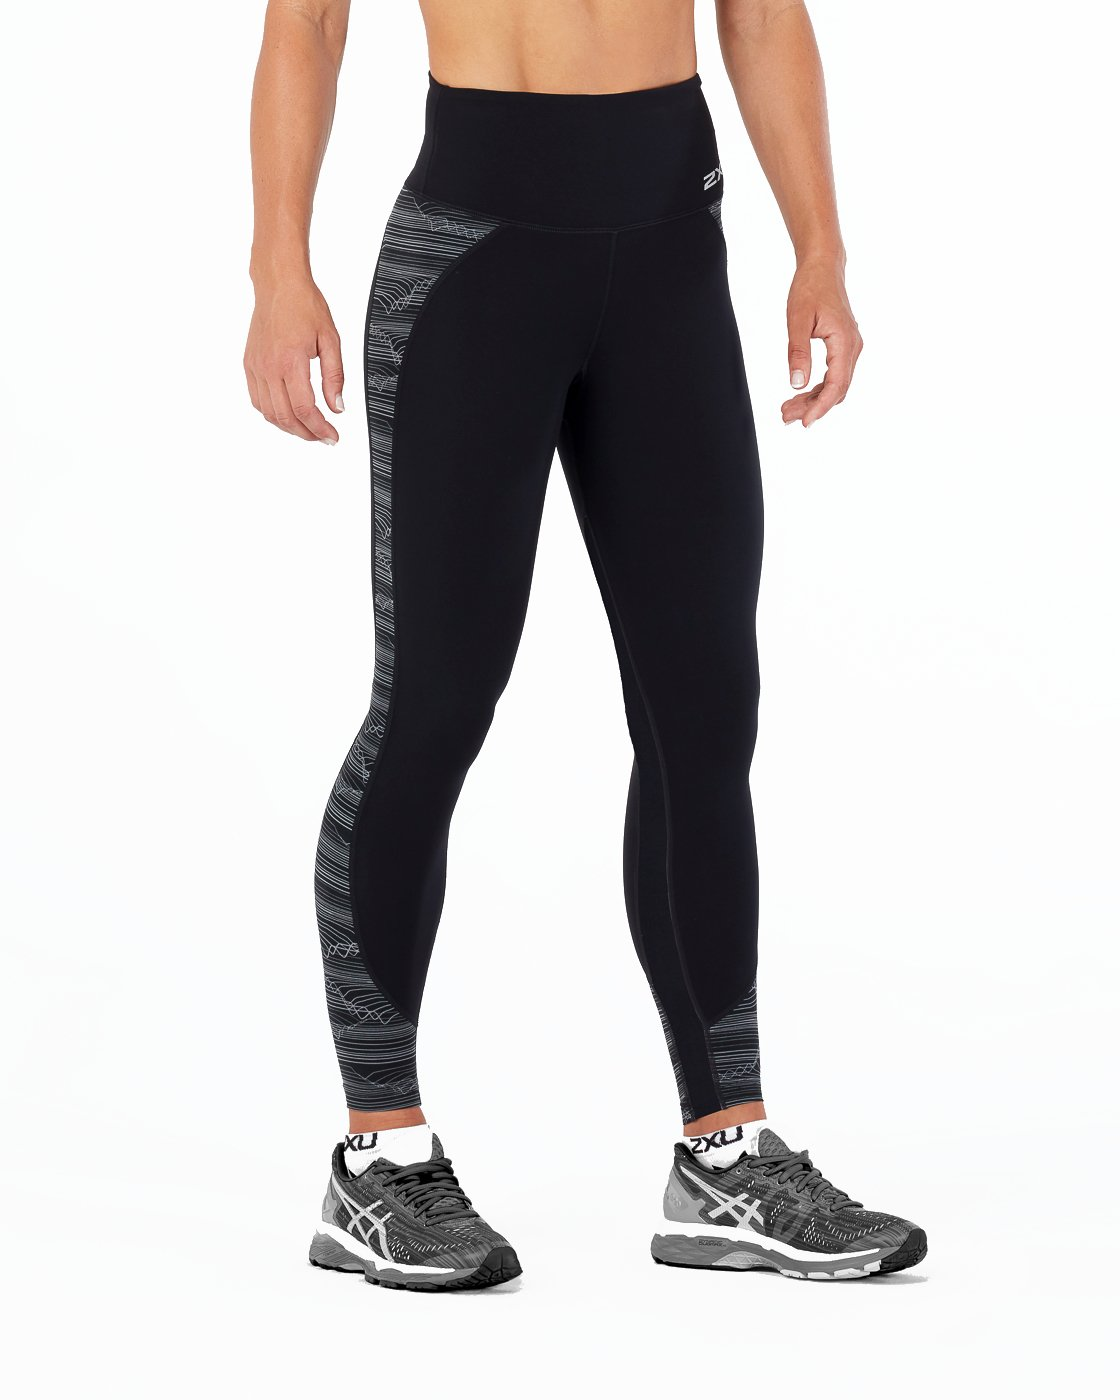 e5dc40e9 Amazon.com : 2XU Women's Fitness Hi-Rise Compression Tights : Clothing